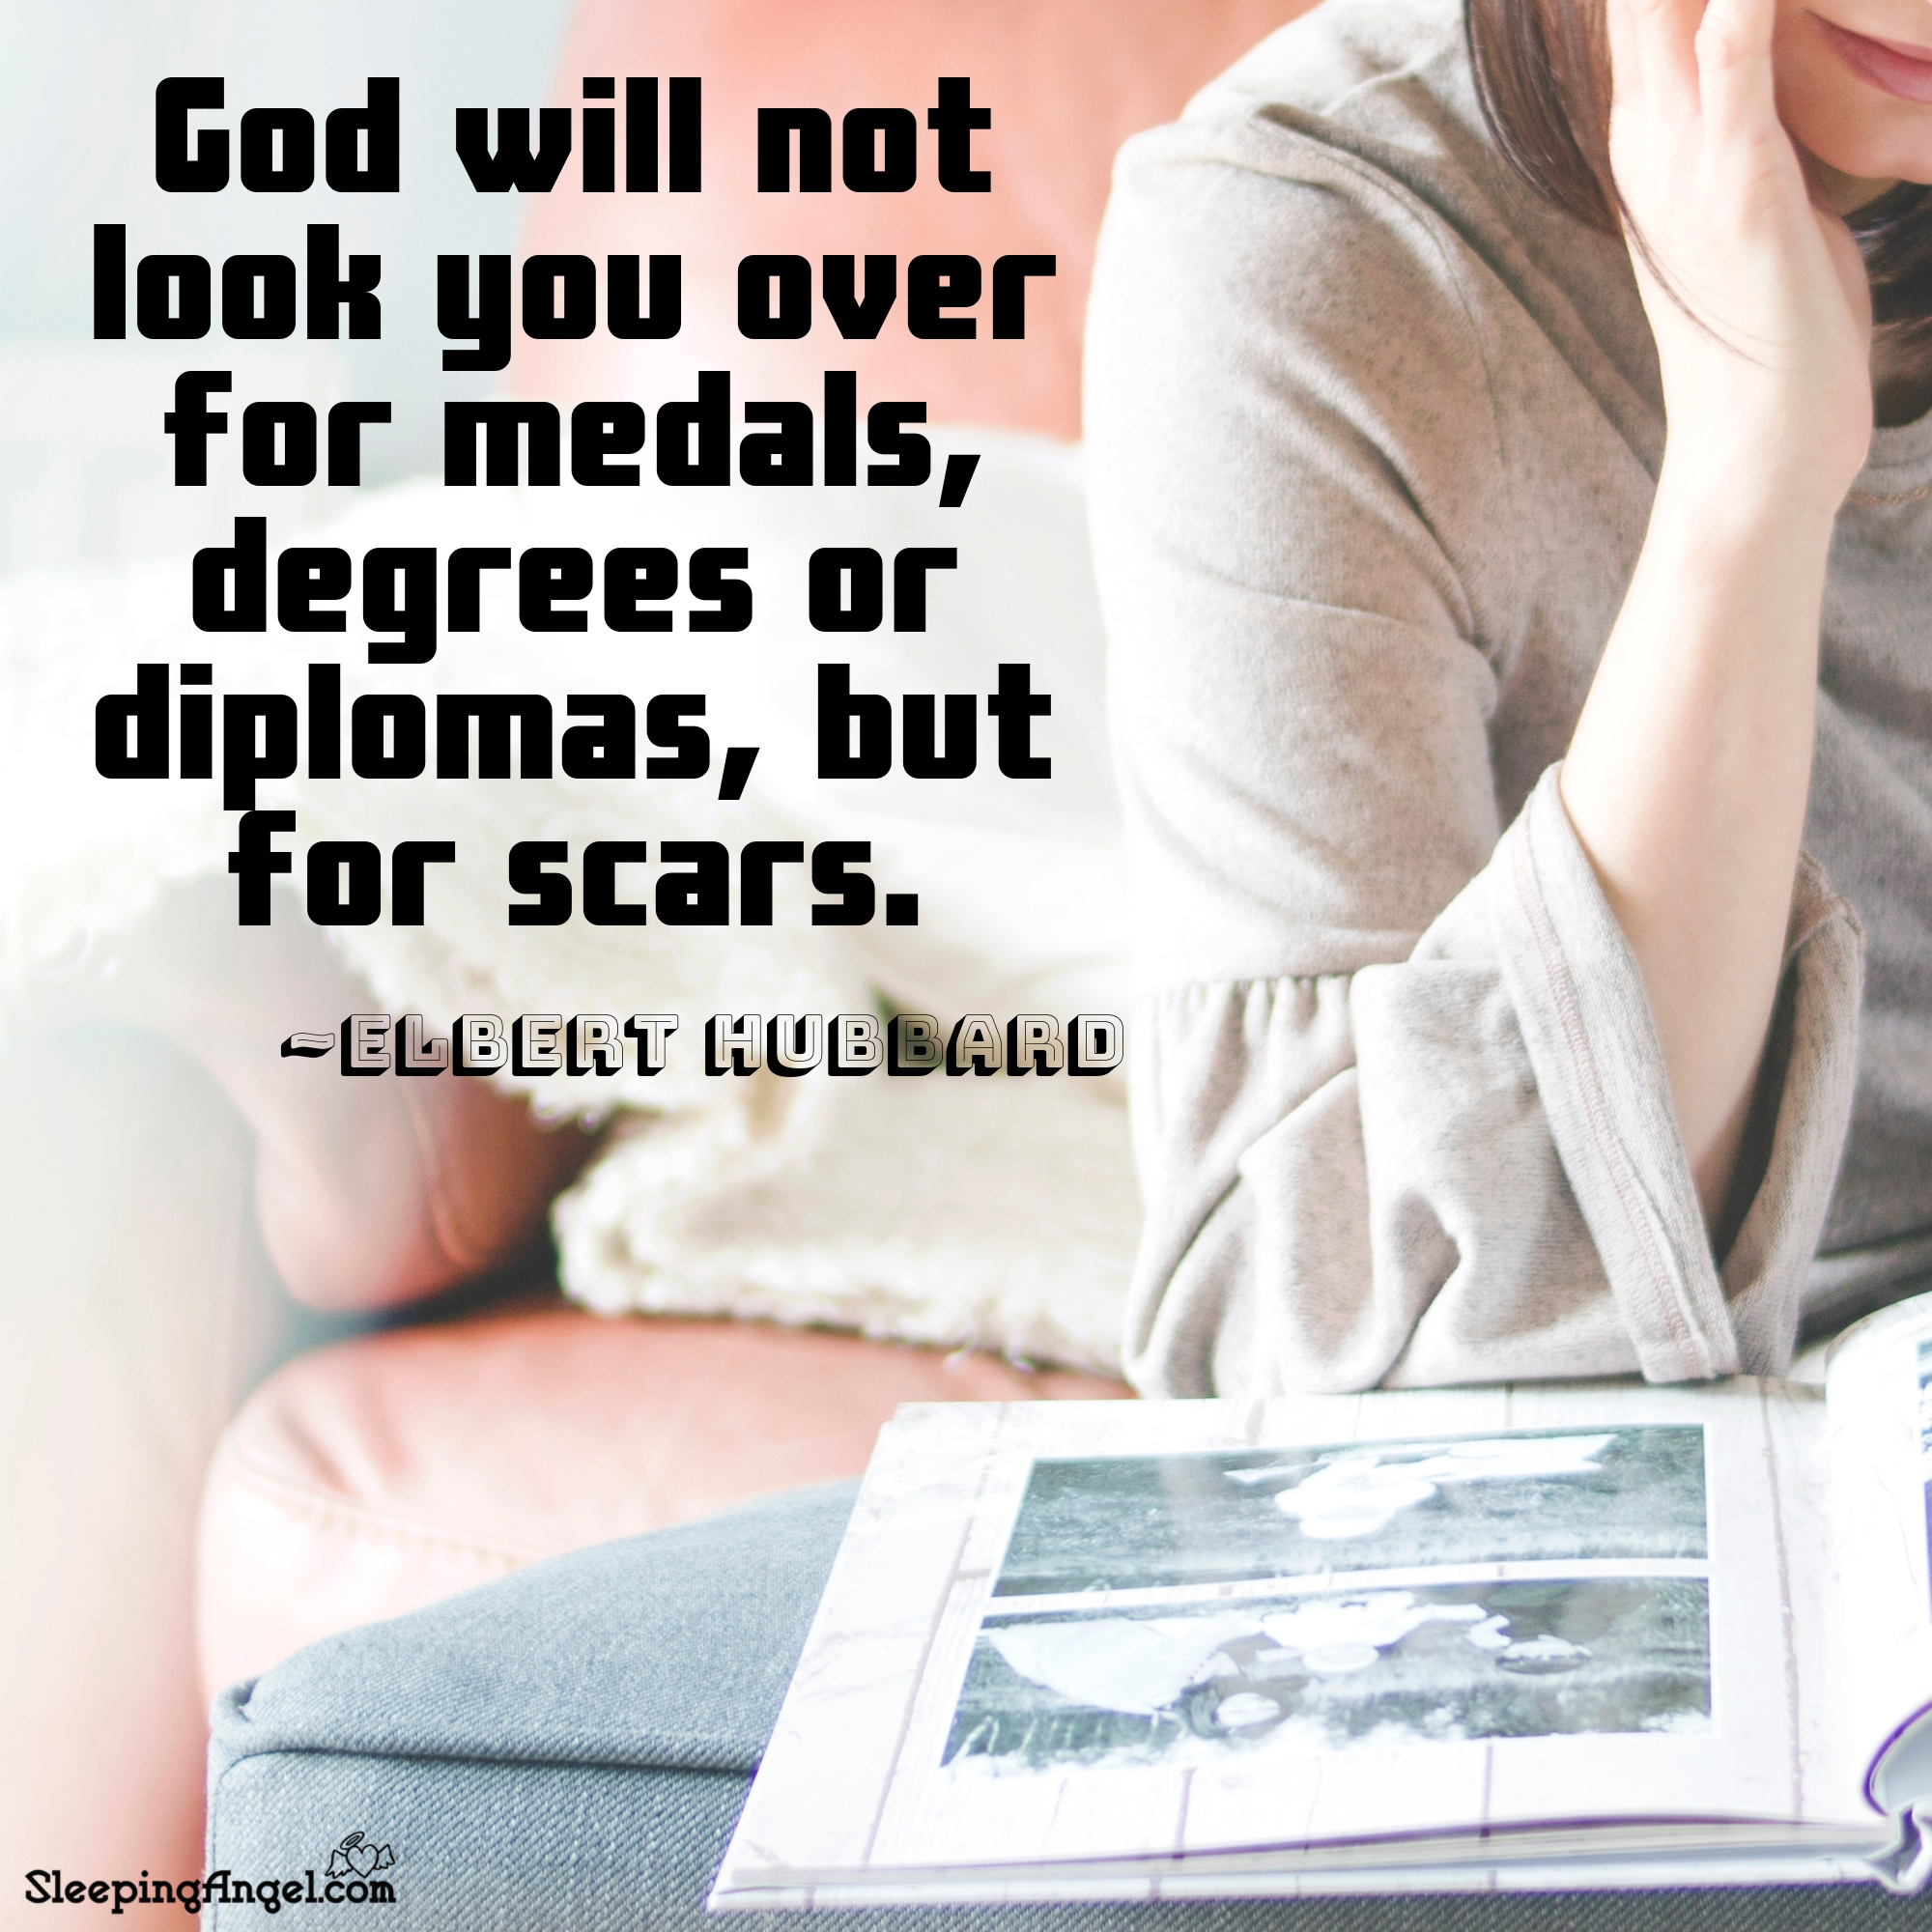 Scars Quote